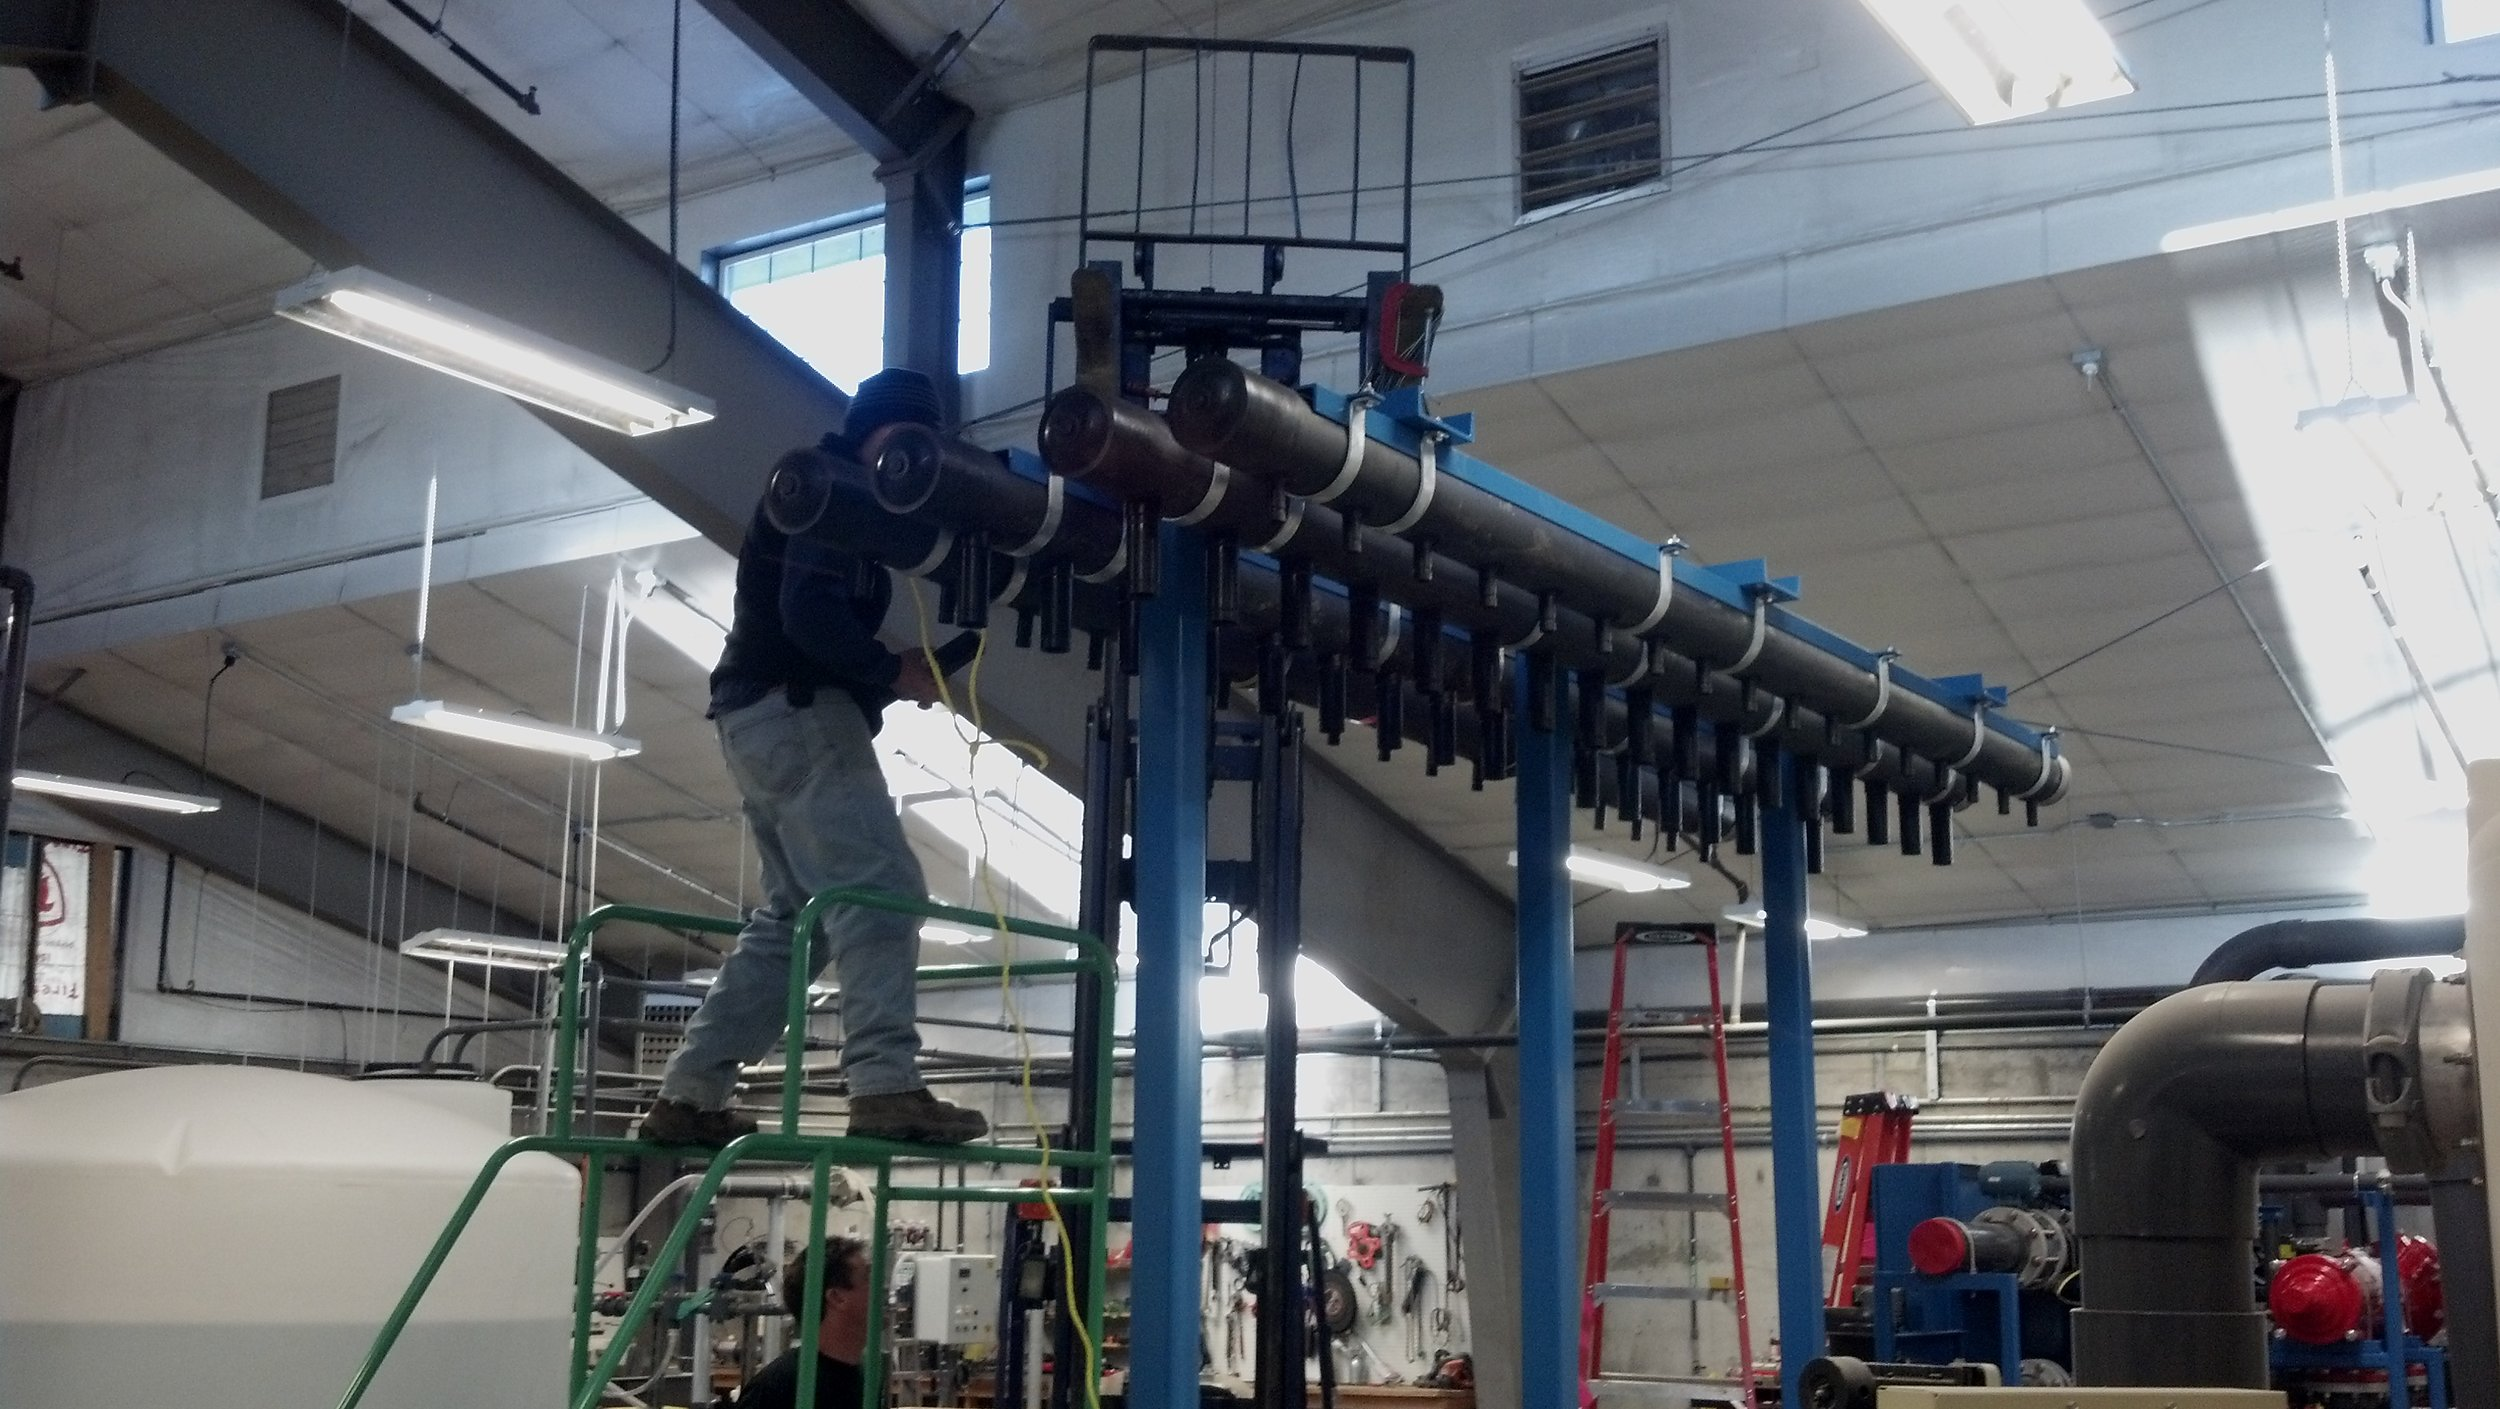 Assembling the header of the new 1 MGD plant expansion skid.